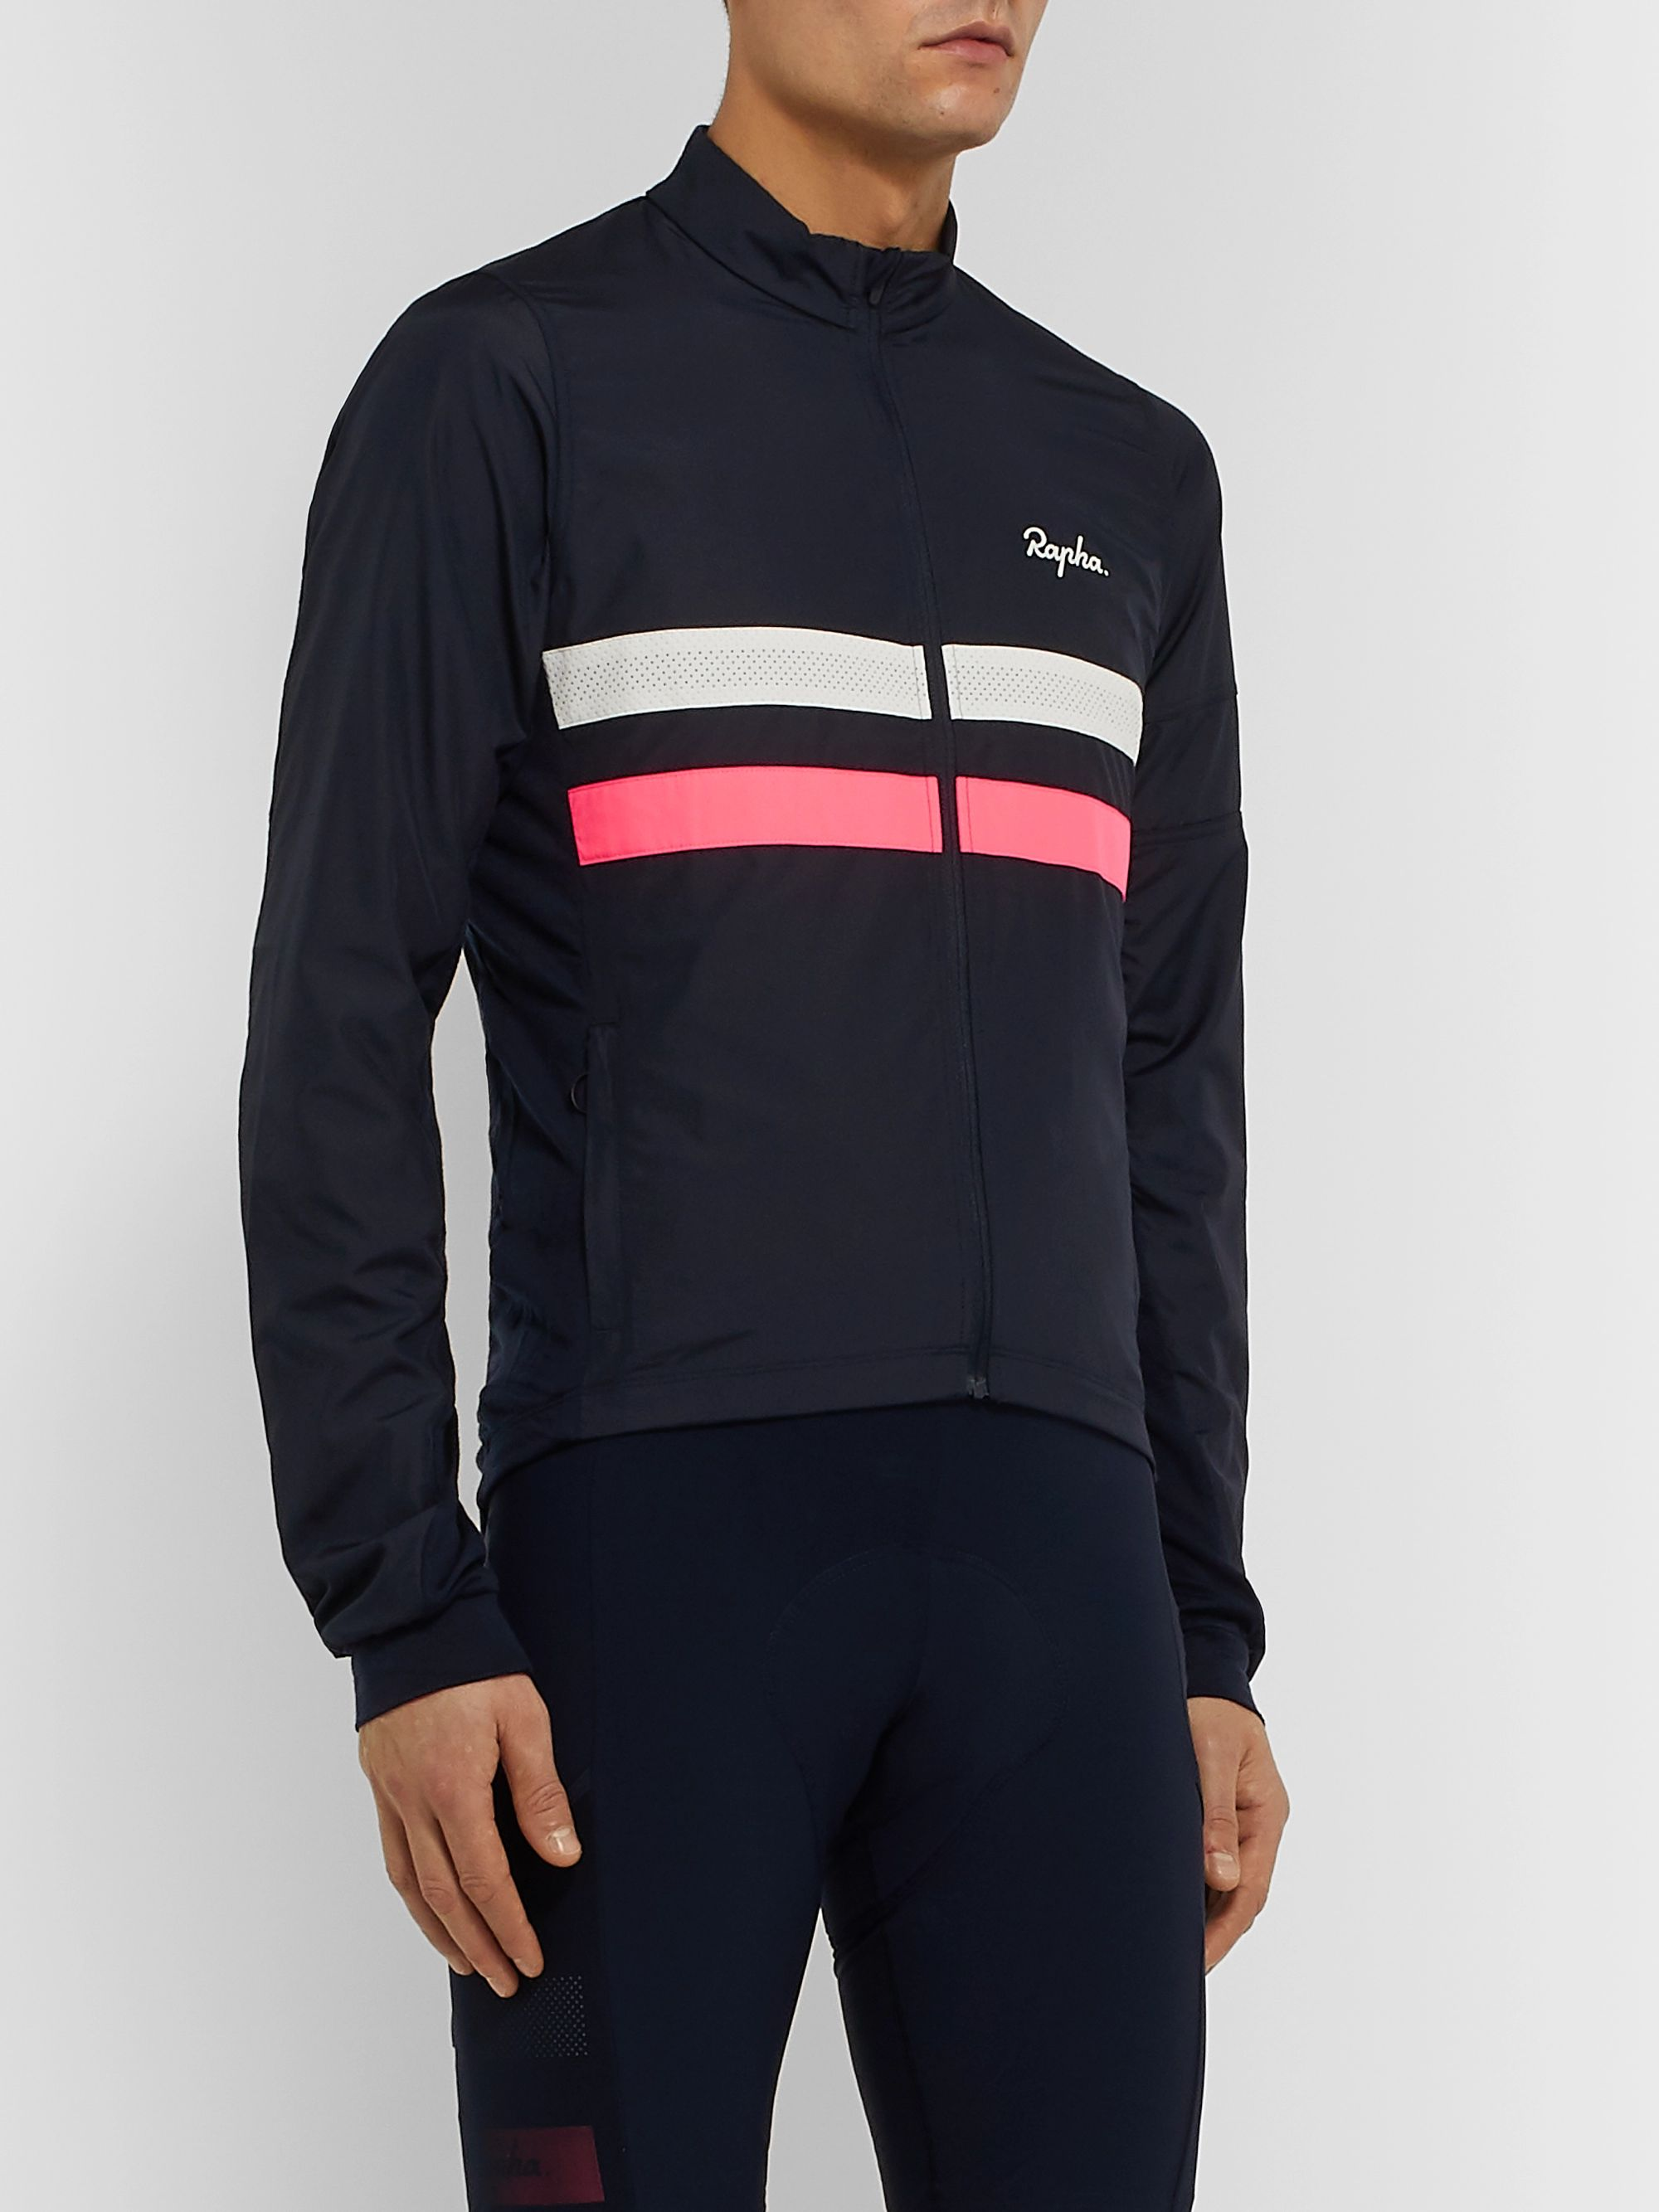 Rapha Brevet Windblock Striped Panelled Cycling Jersey